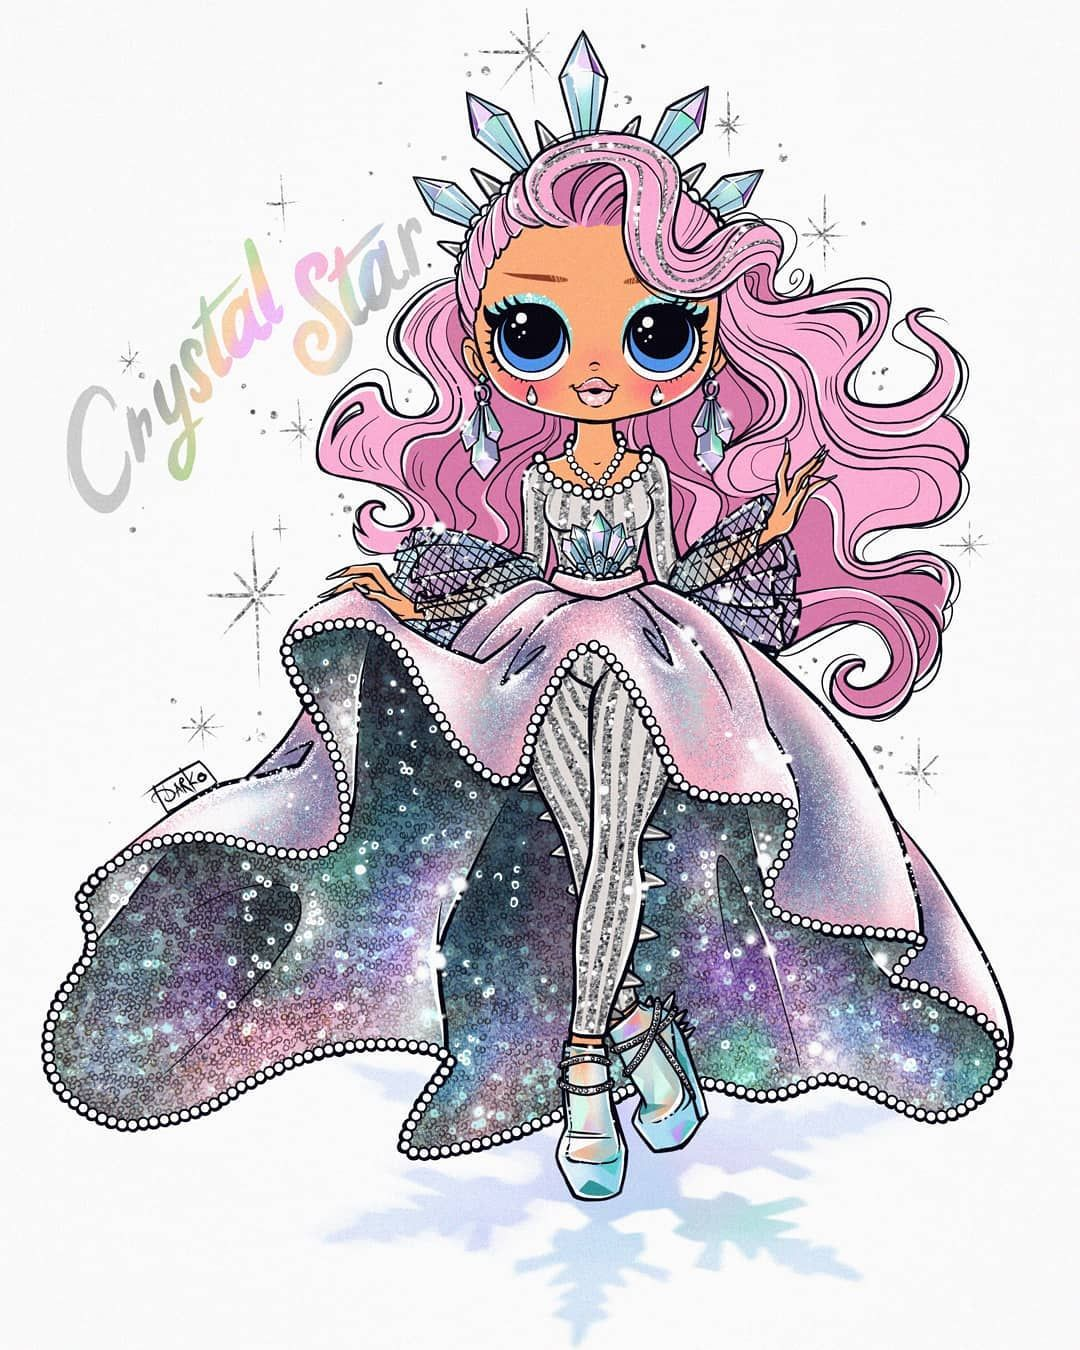 Darko Dordevic On Instagram Gorgeous Sparkly Crystal Star Lolsurprise Mgaentertainment Crystalstar Win In 2020 Lol Dolls Doll Drawing Cute Kawaii Drawings